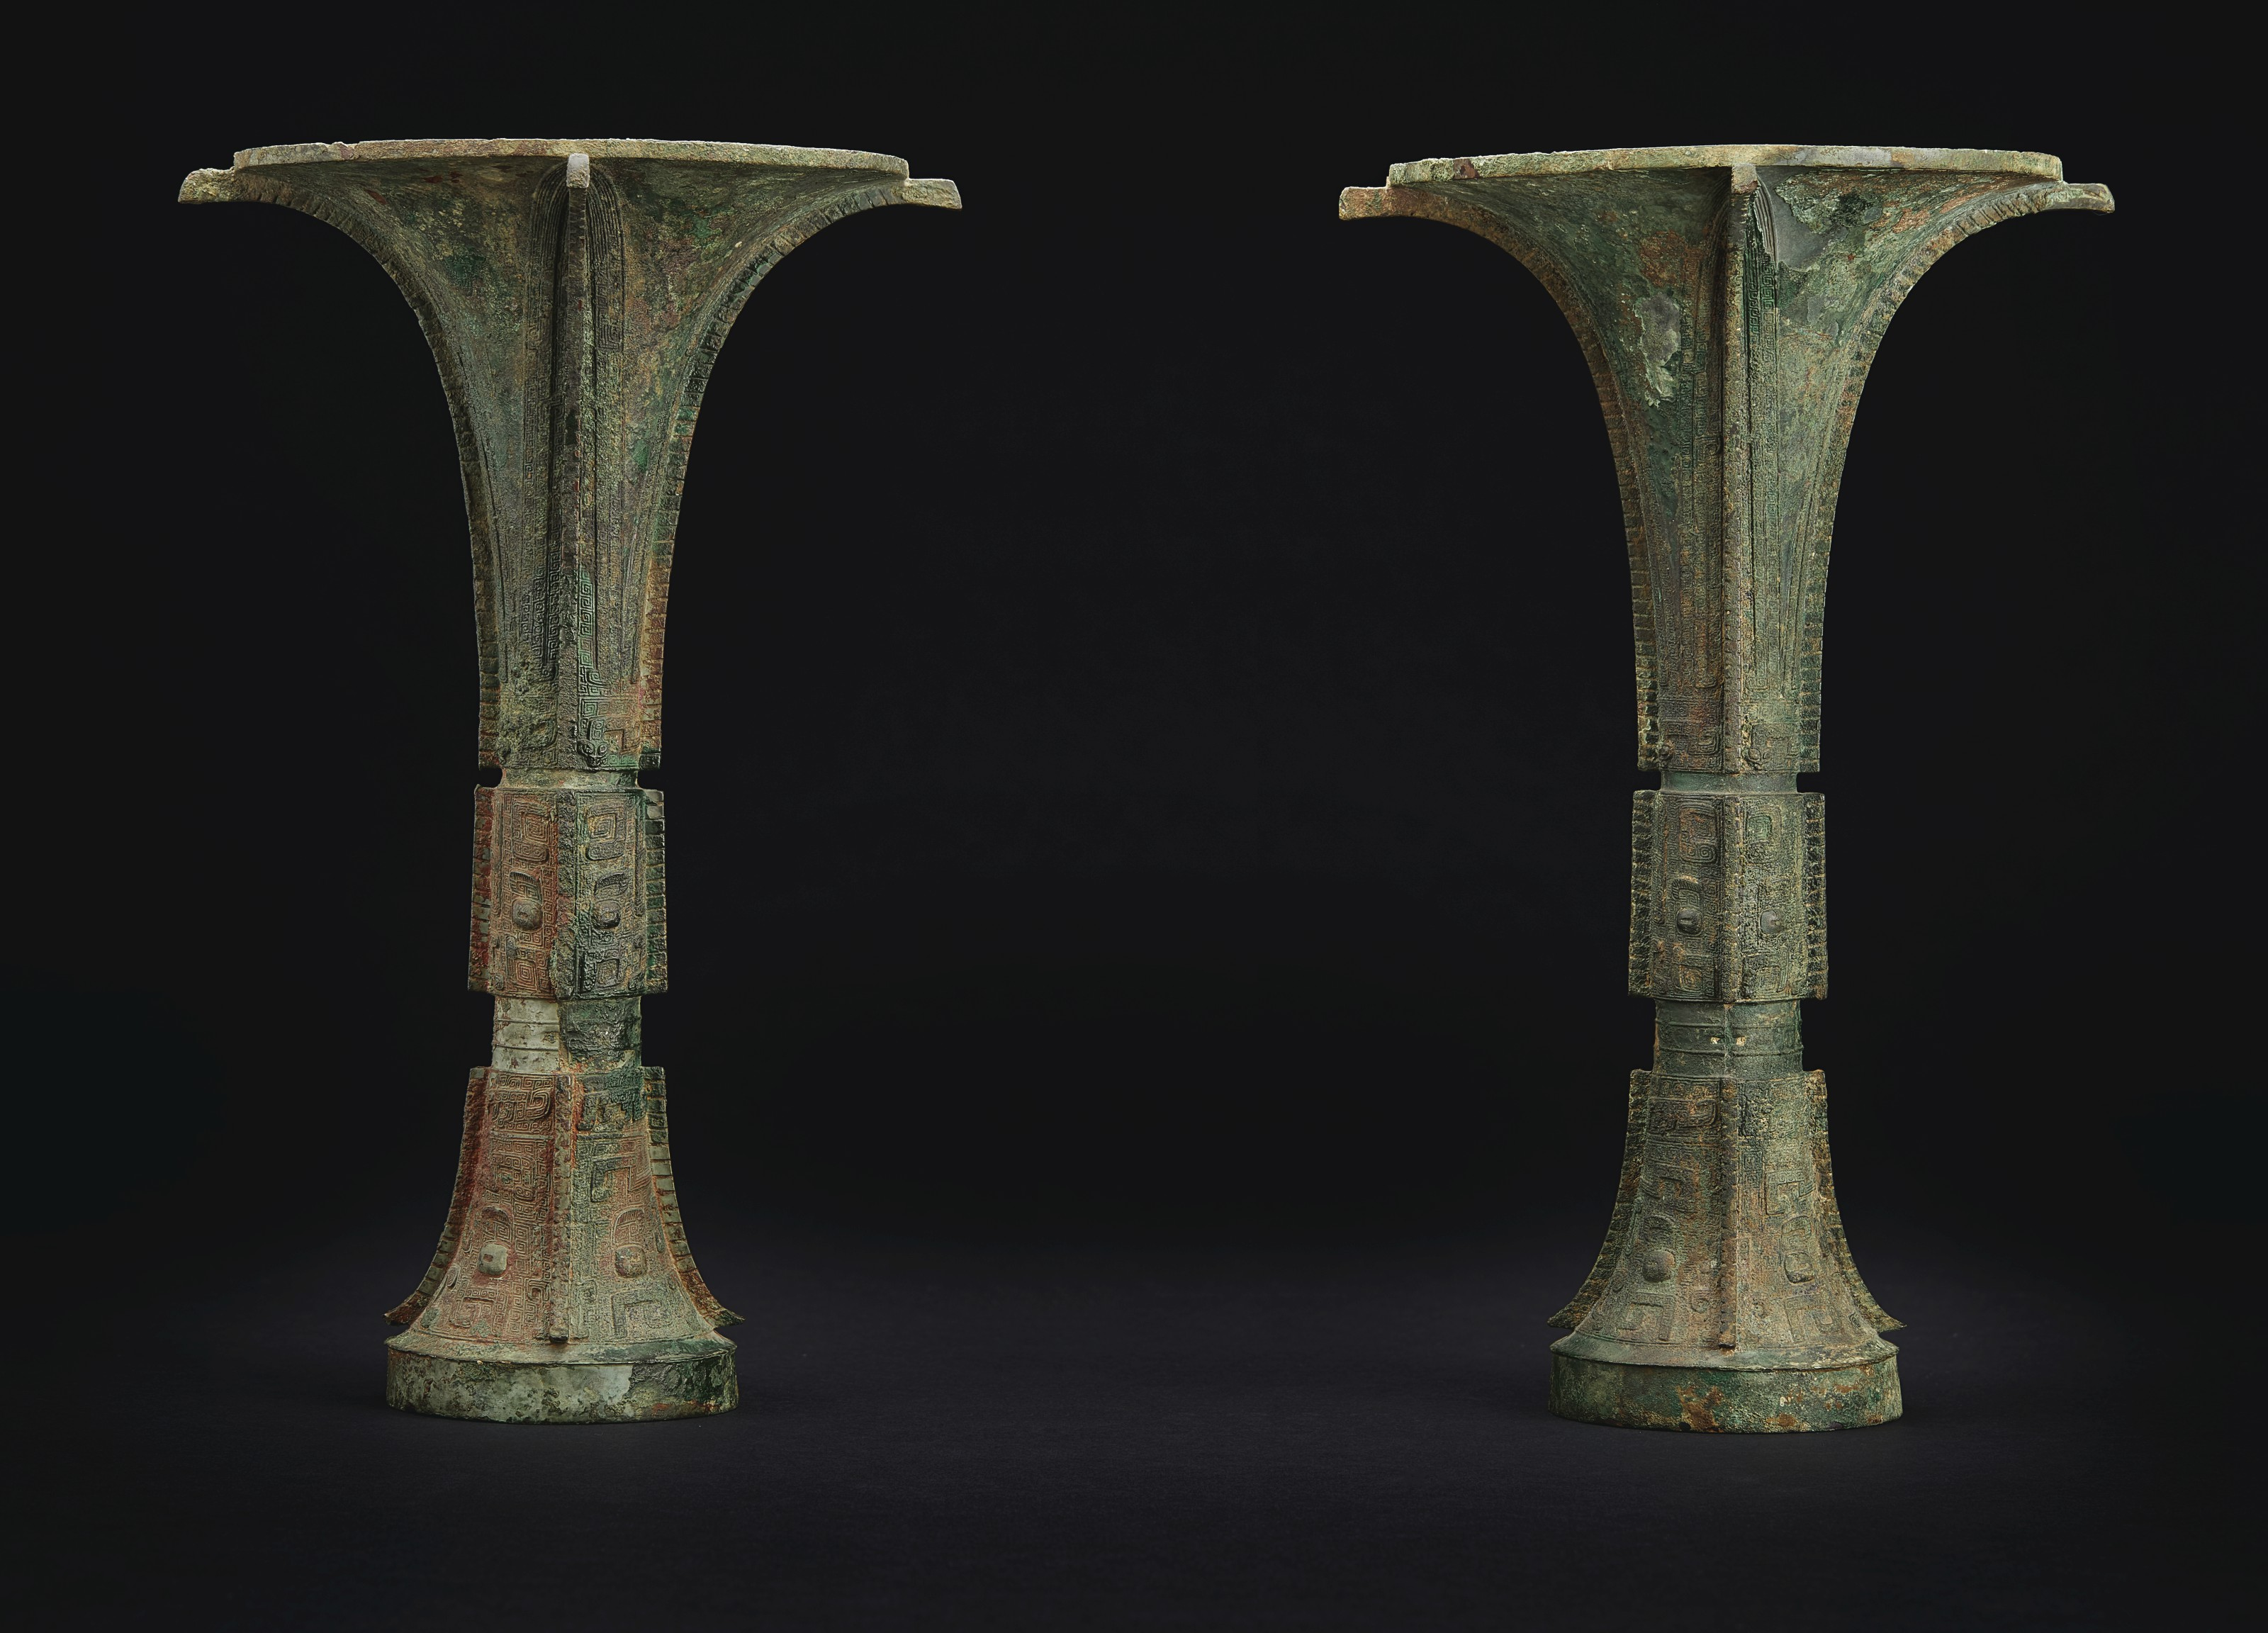 THE TIE ZHU GU A VERY RARE AND FINELY CAST PAIR OF BRONZE RITUAL WINE VESSELS